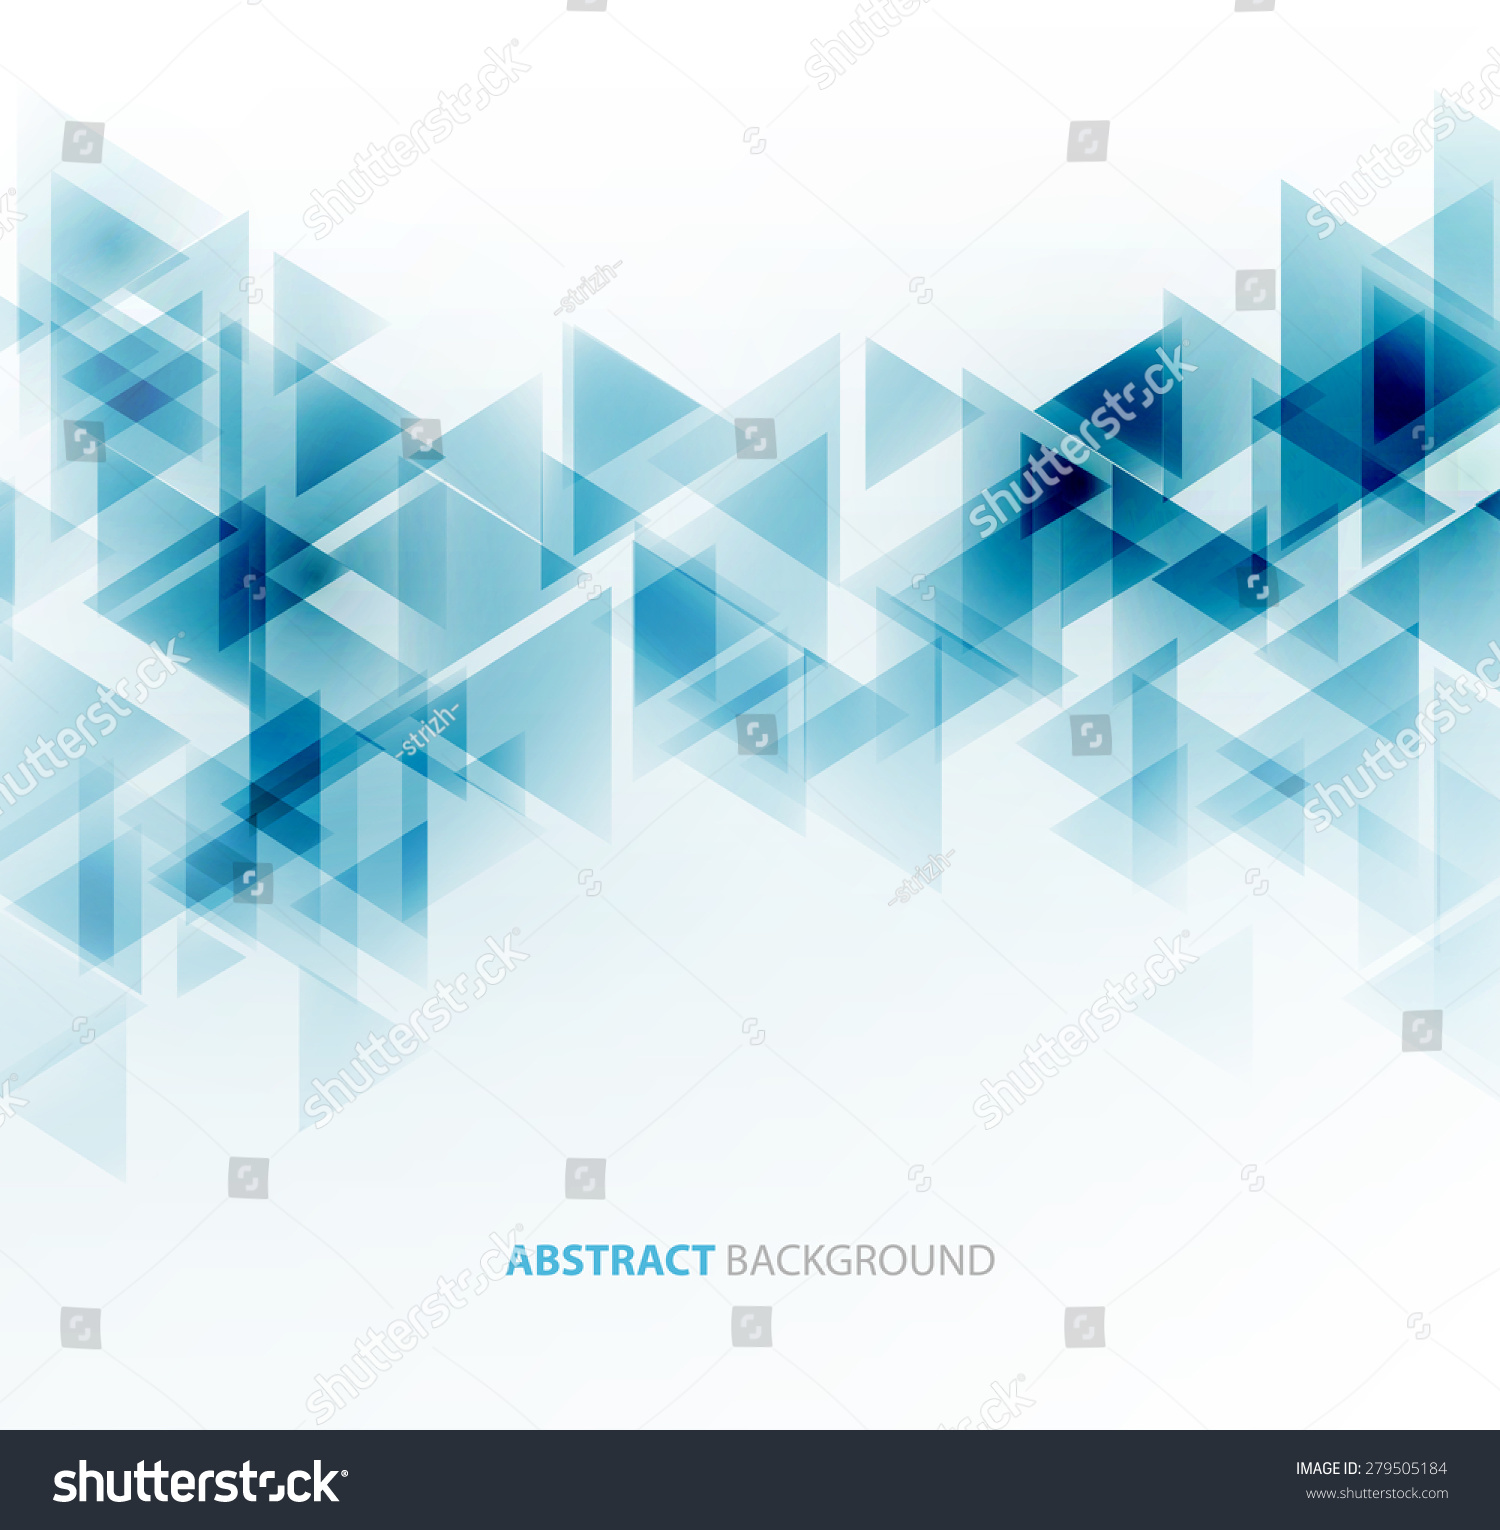 stock vector geometric background - photo #32